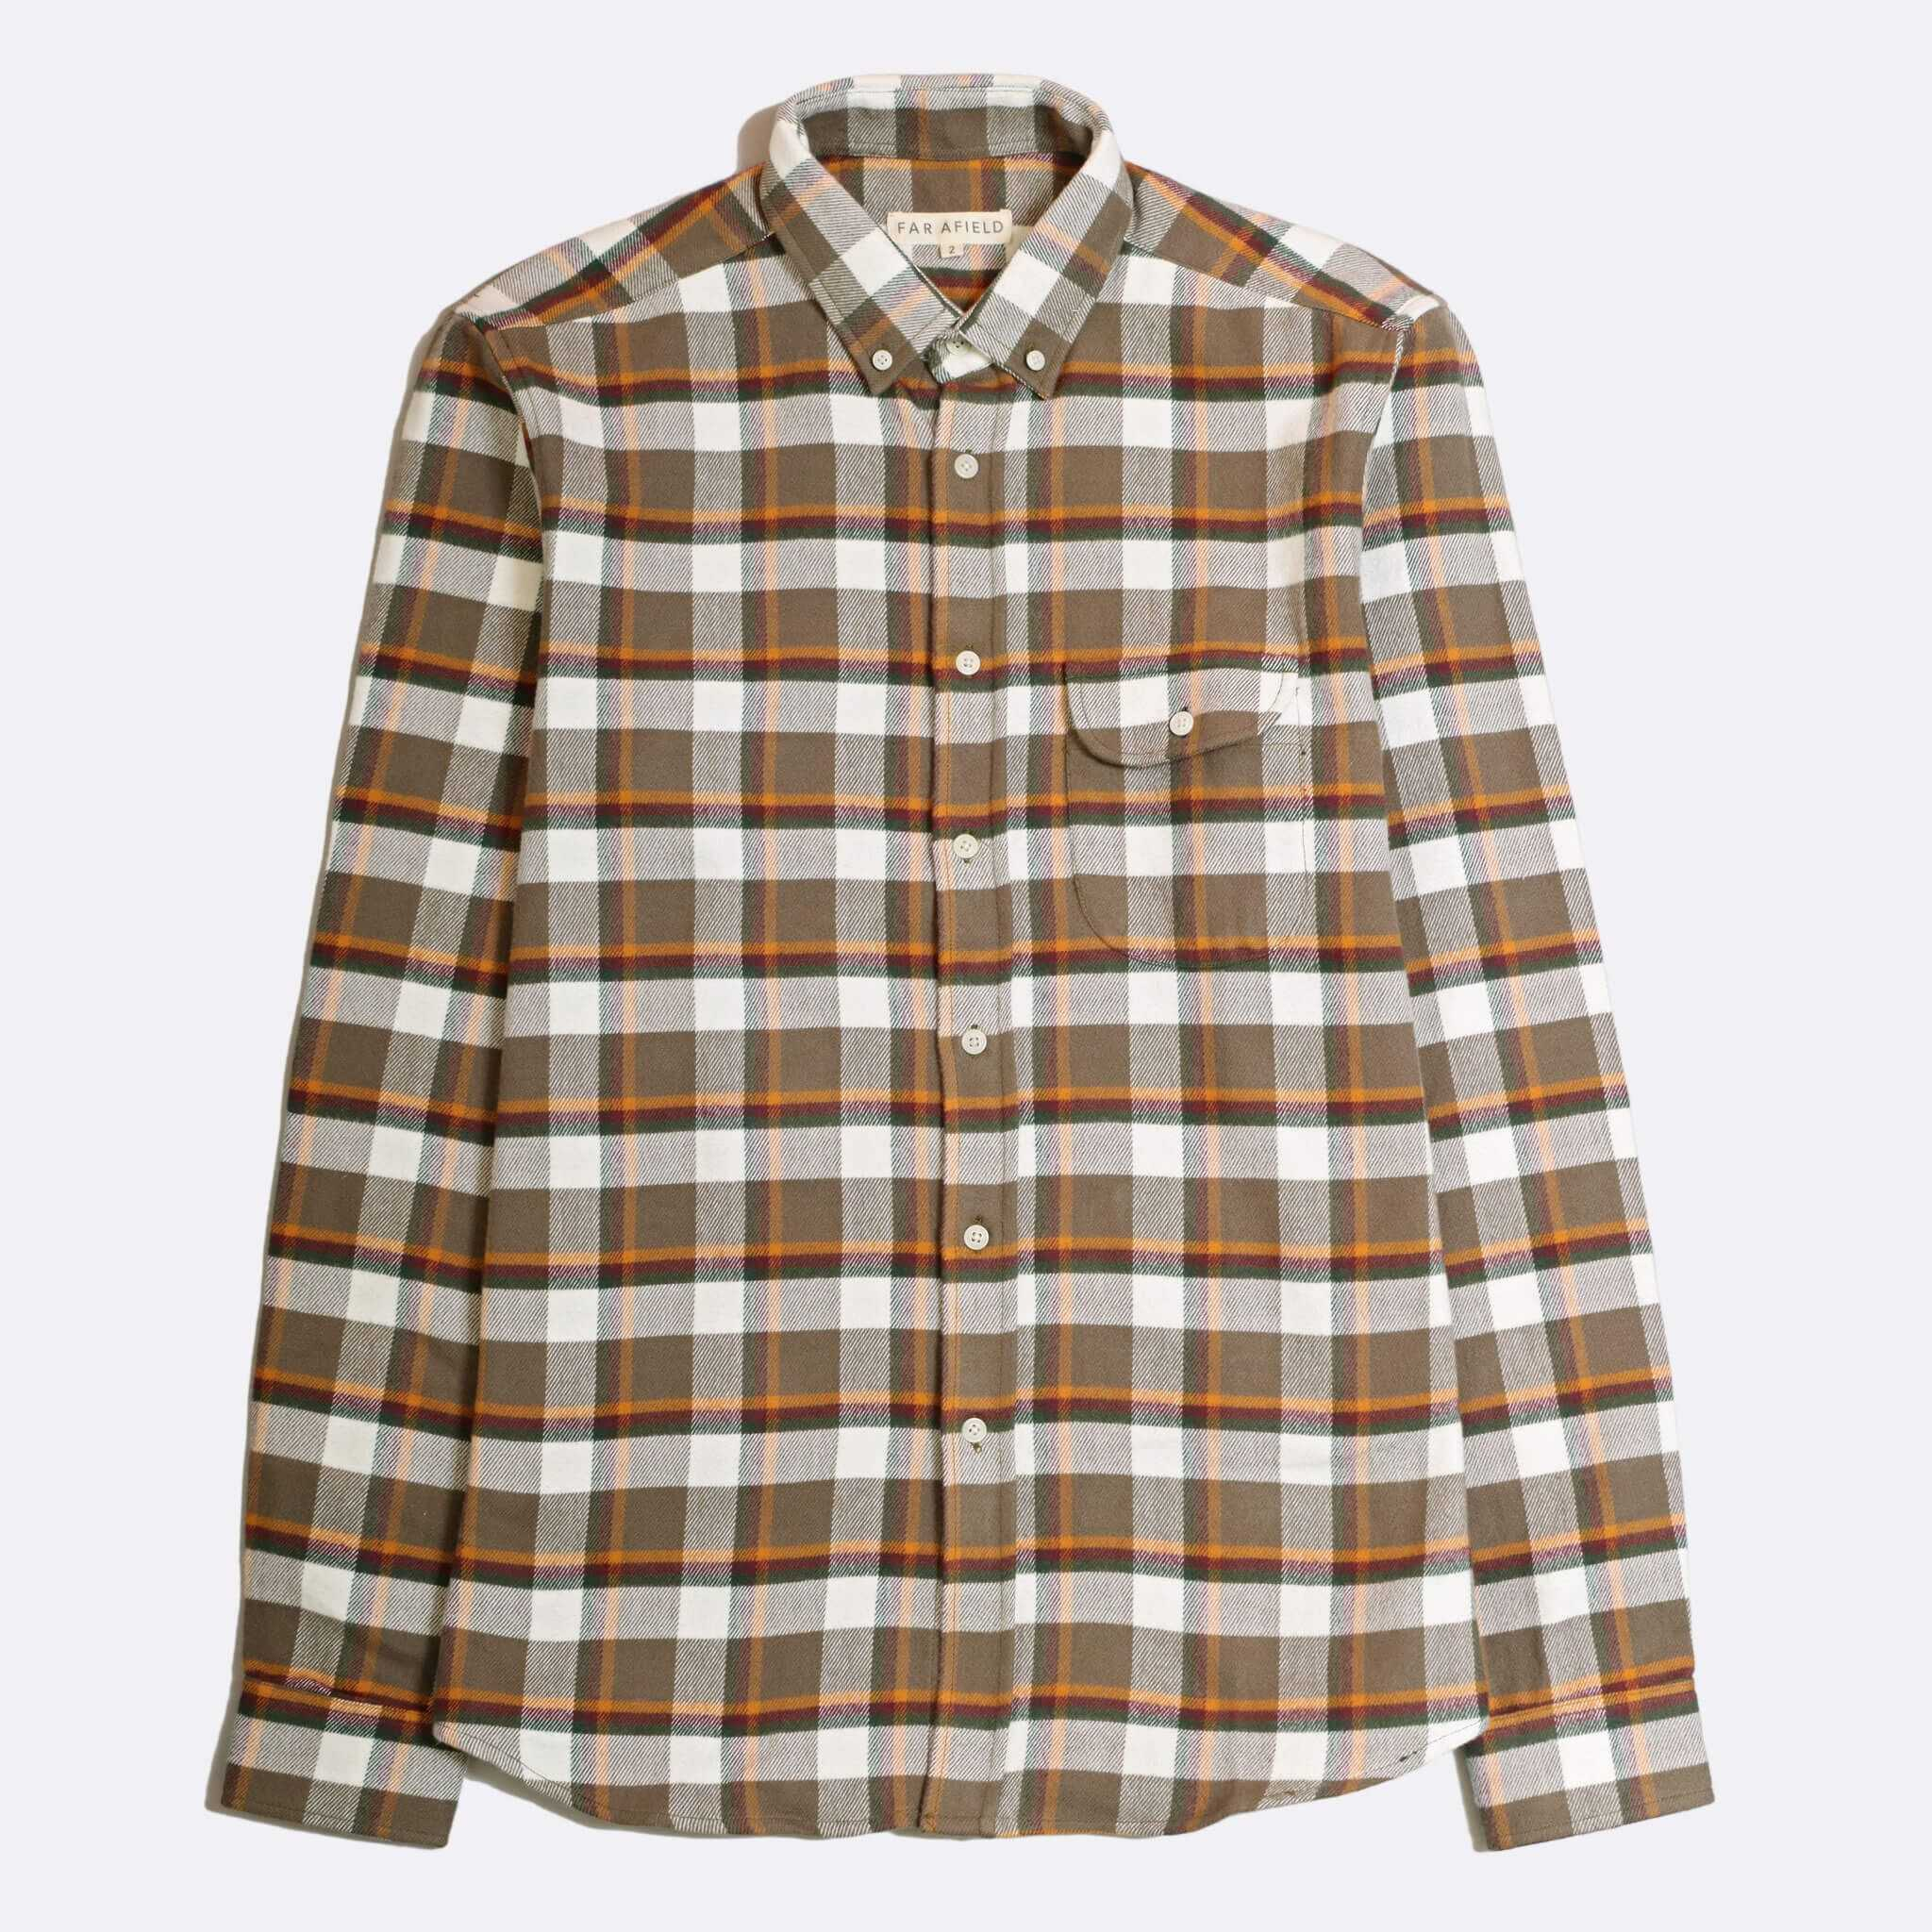 CAMISA FRANELA FAR AFIELD LARRY LONG SLEEVE